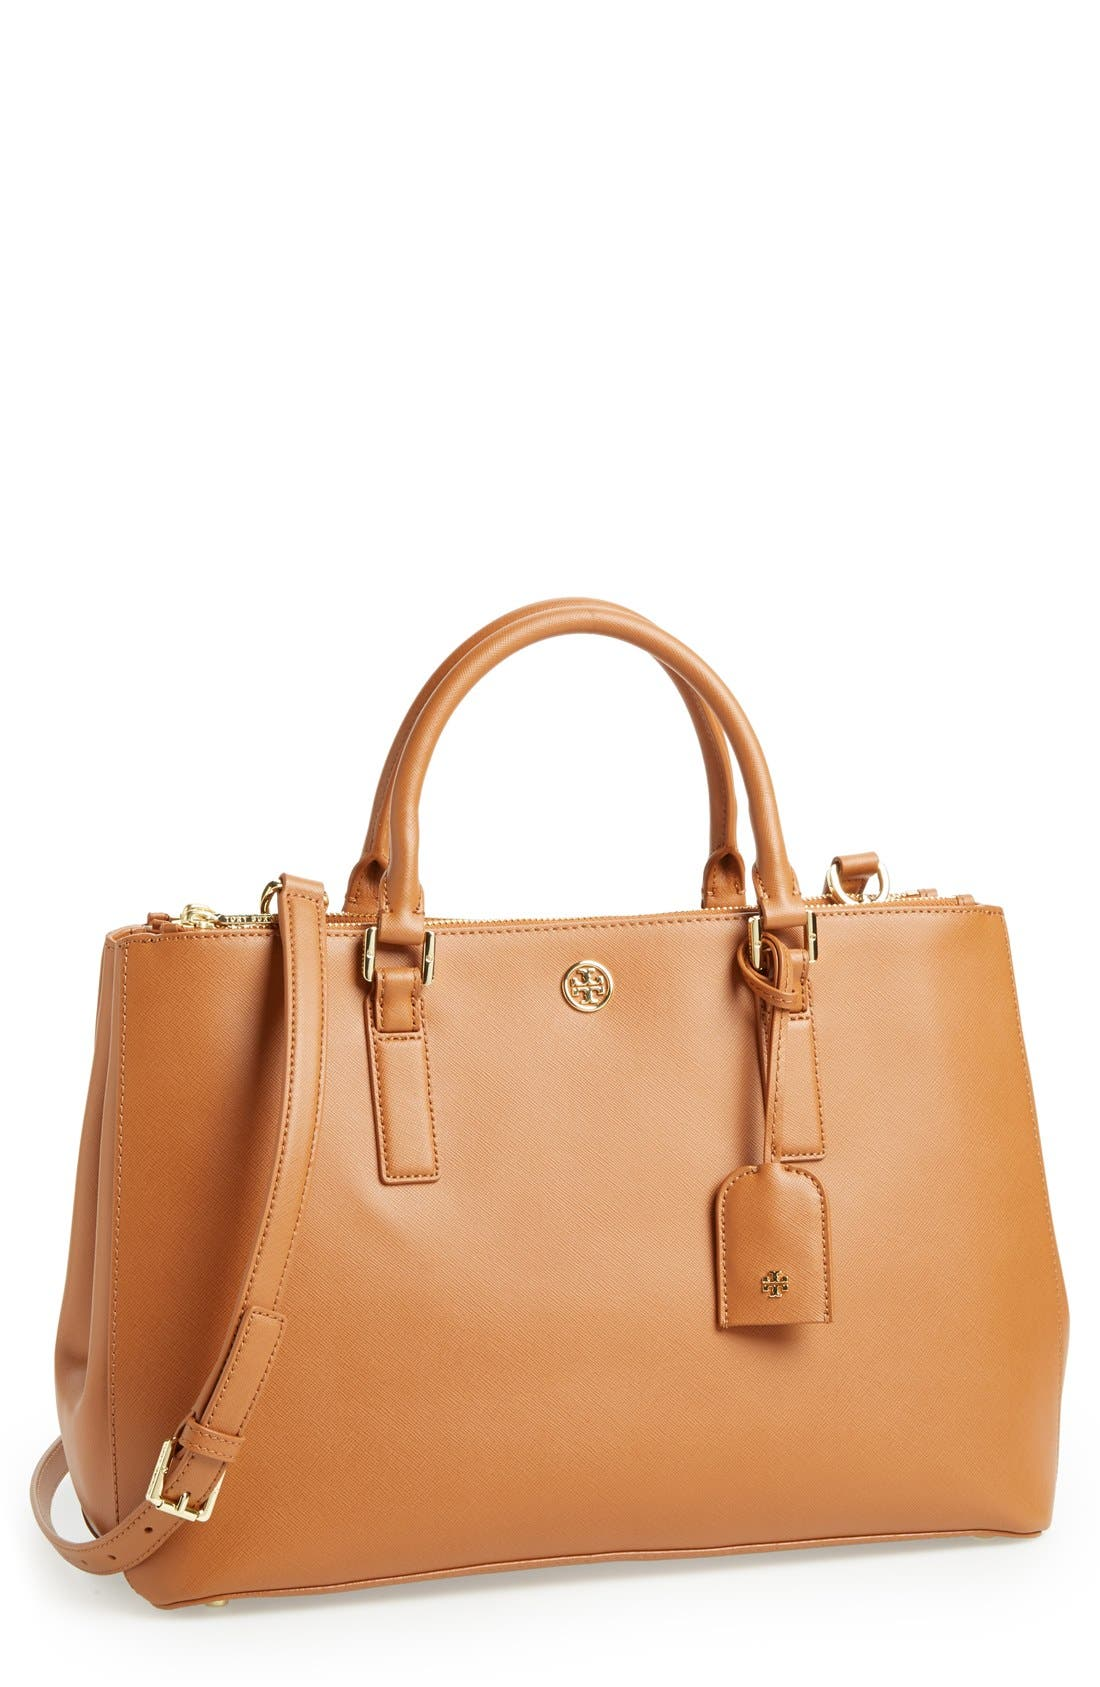 Alternate Image 1 Selected - Tory Burch 'Robinson' Double Zip Tote